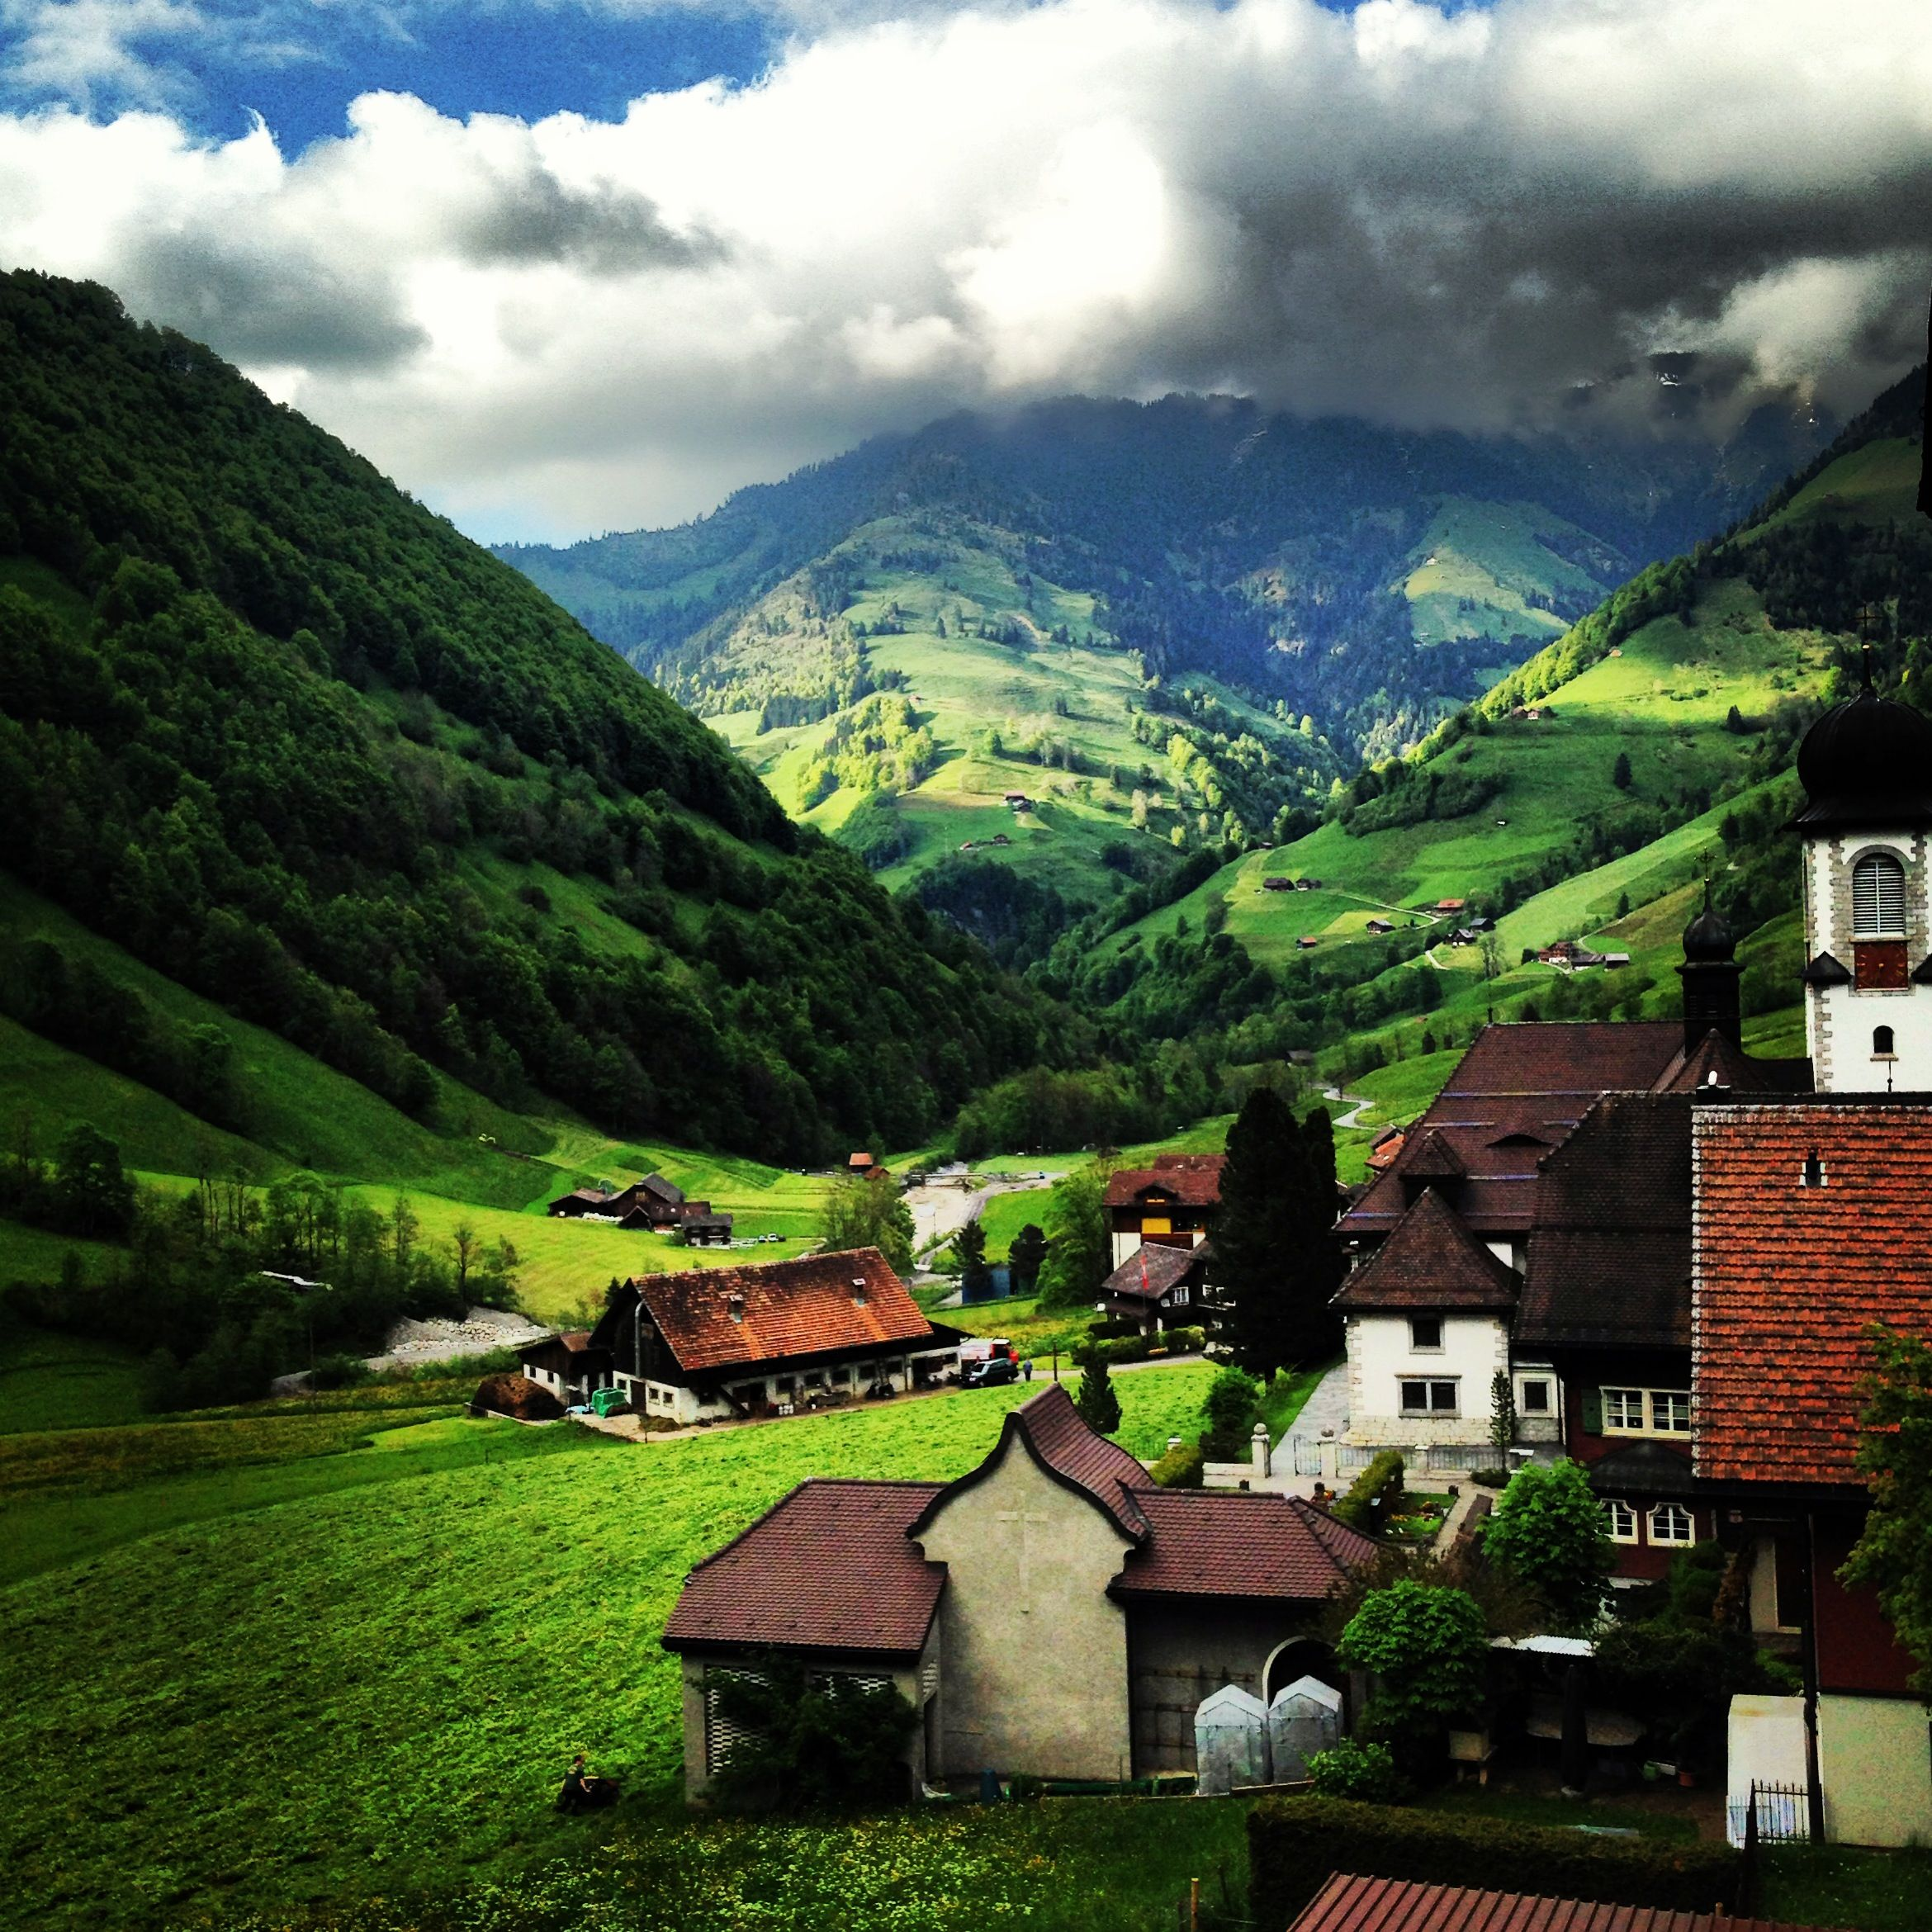 Swiss Alps Still The Most Beautiful Scenery I 39 Ve Ever Seen My Adventures Pinterest Swiss